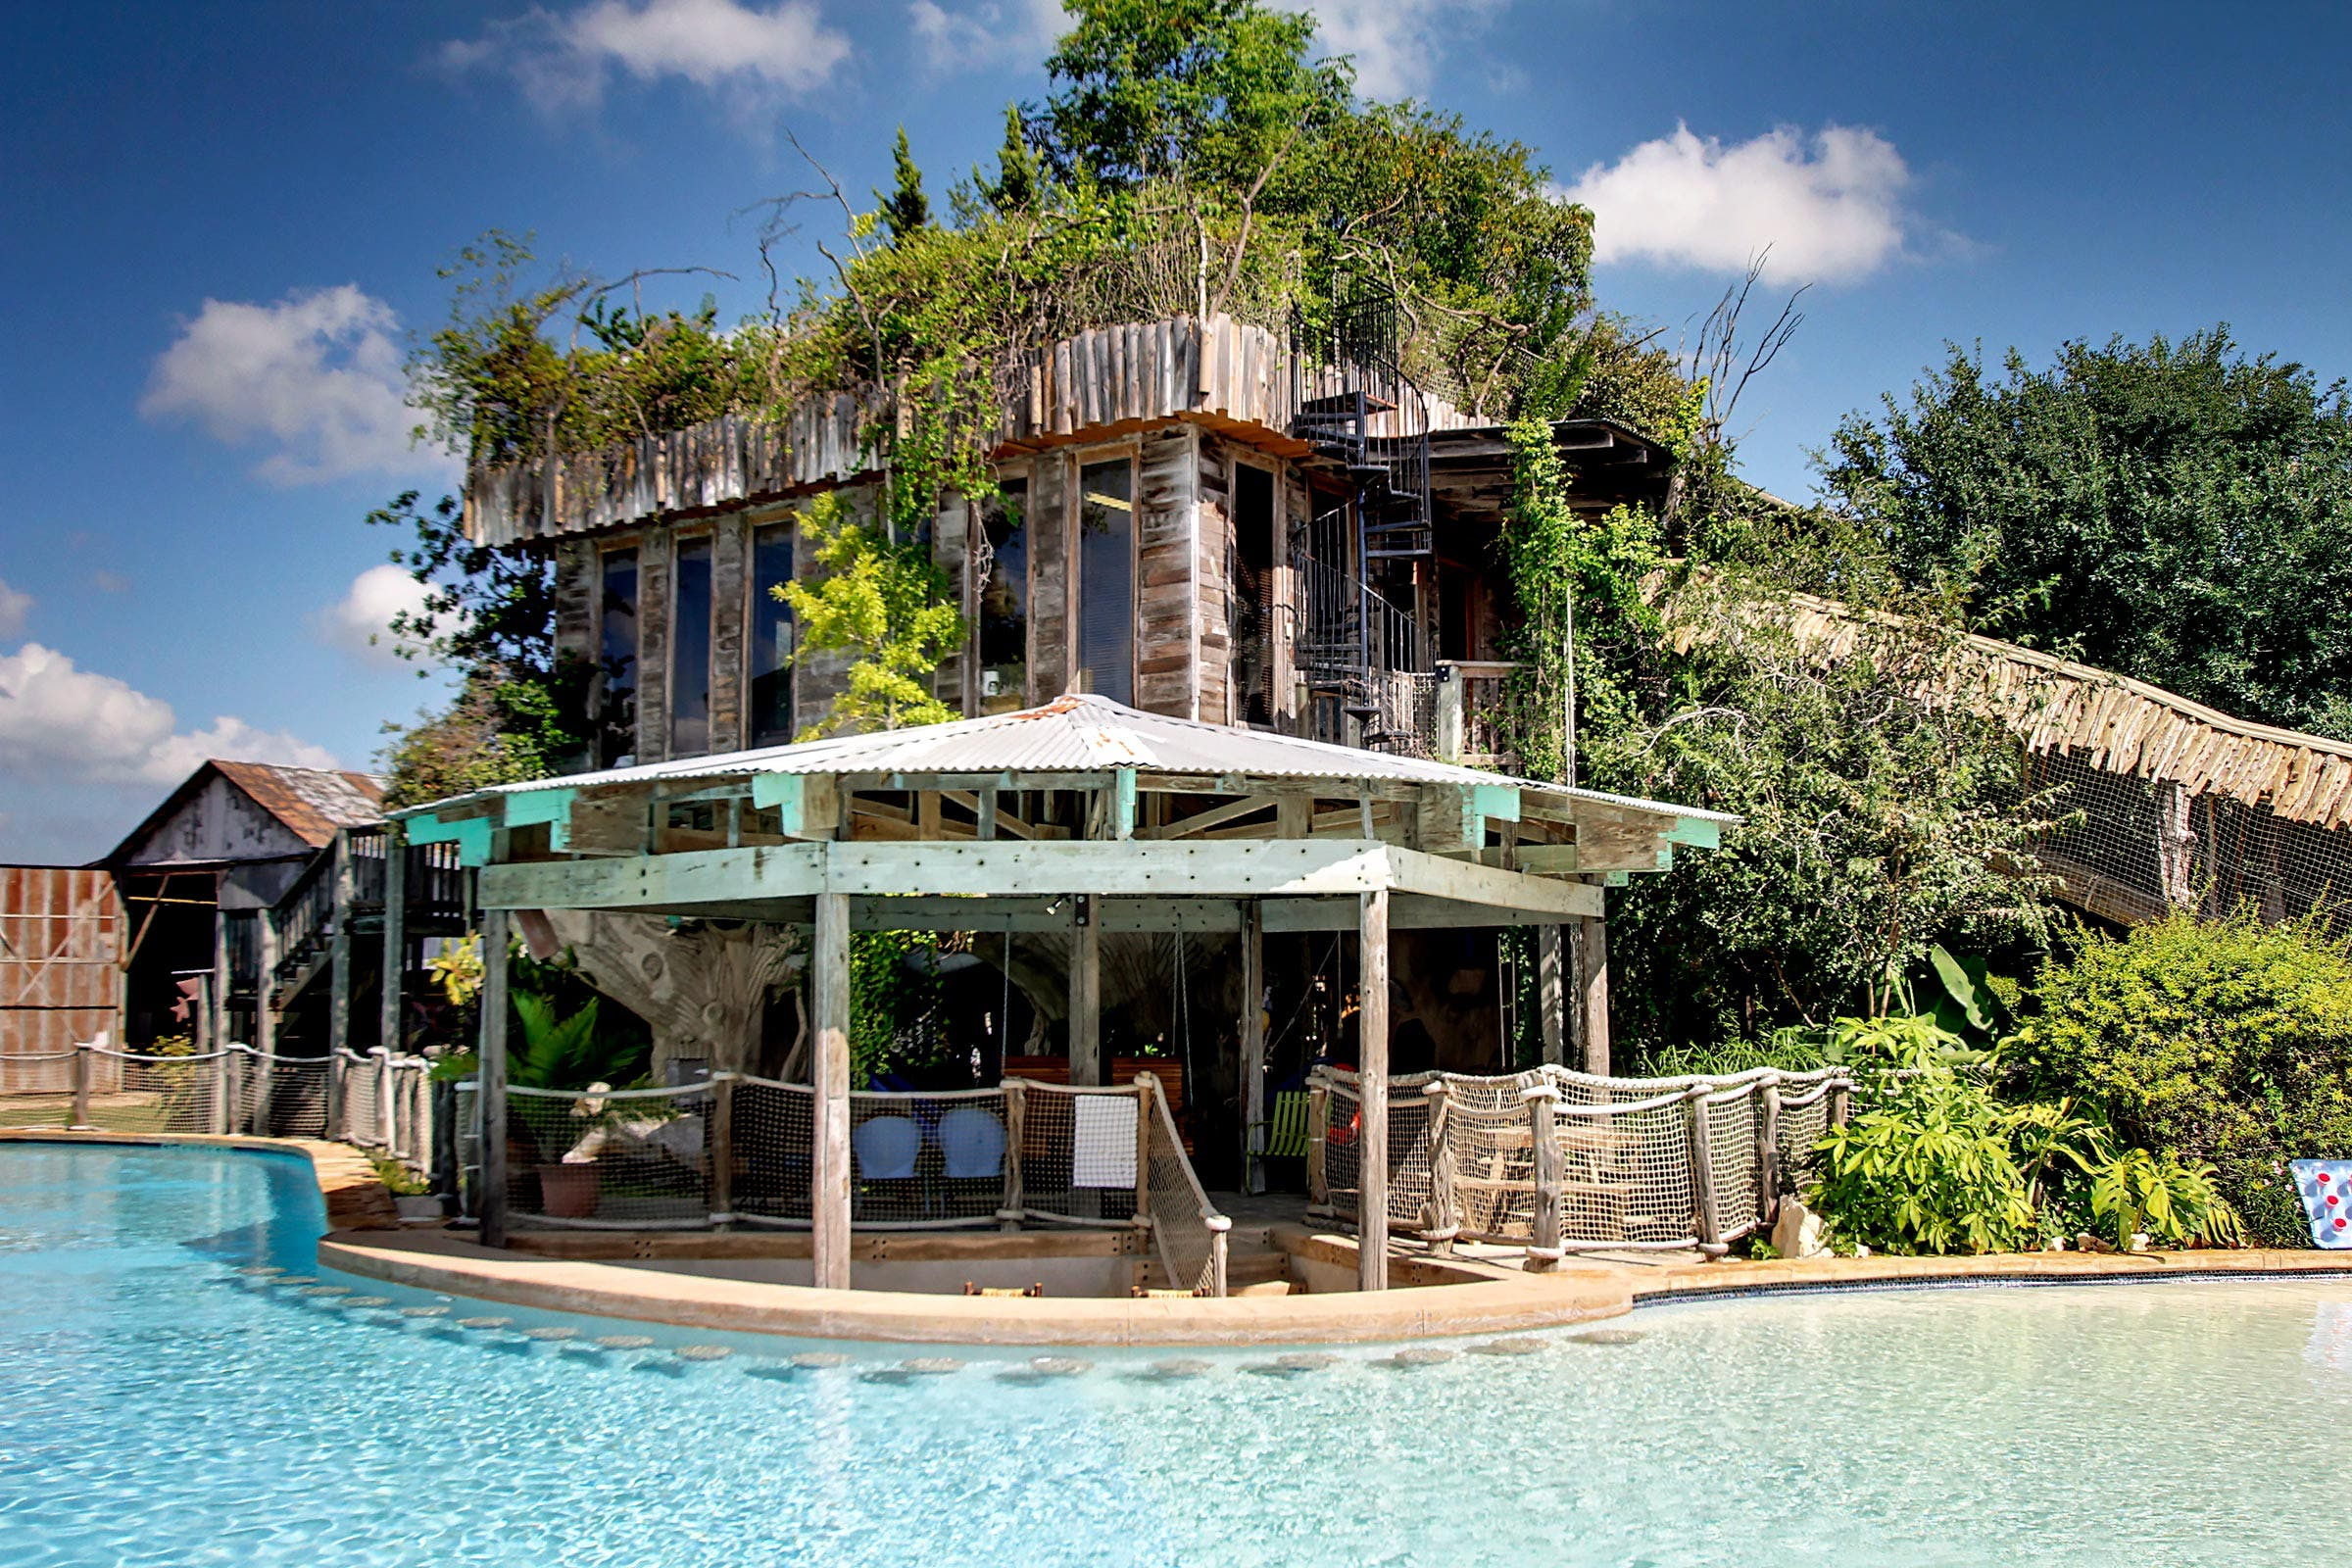 treehouse-stays-guadalupe-river-houses